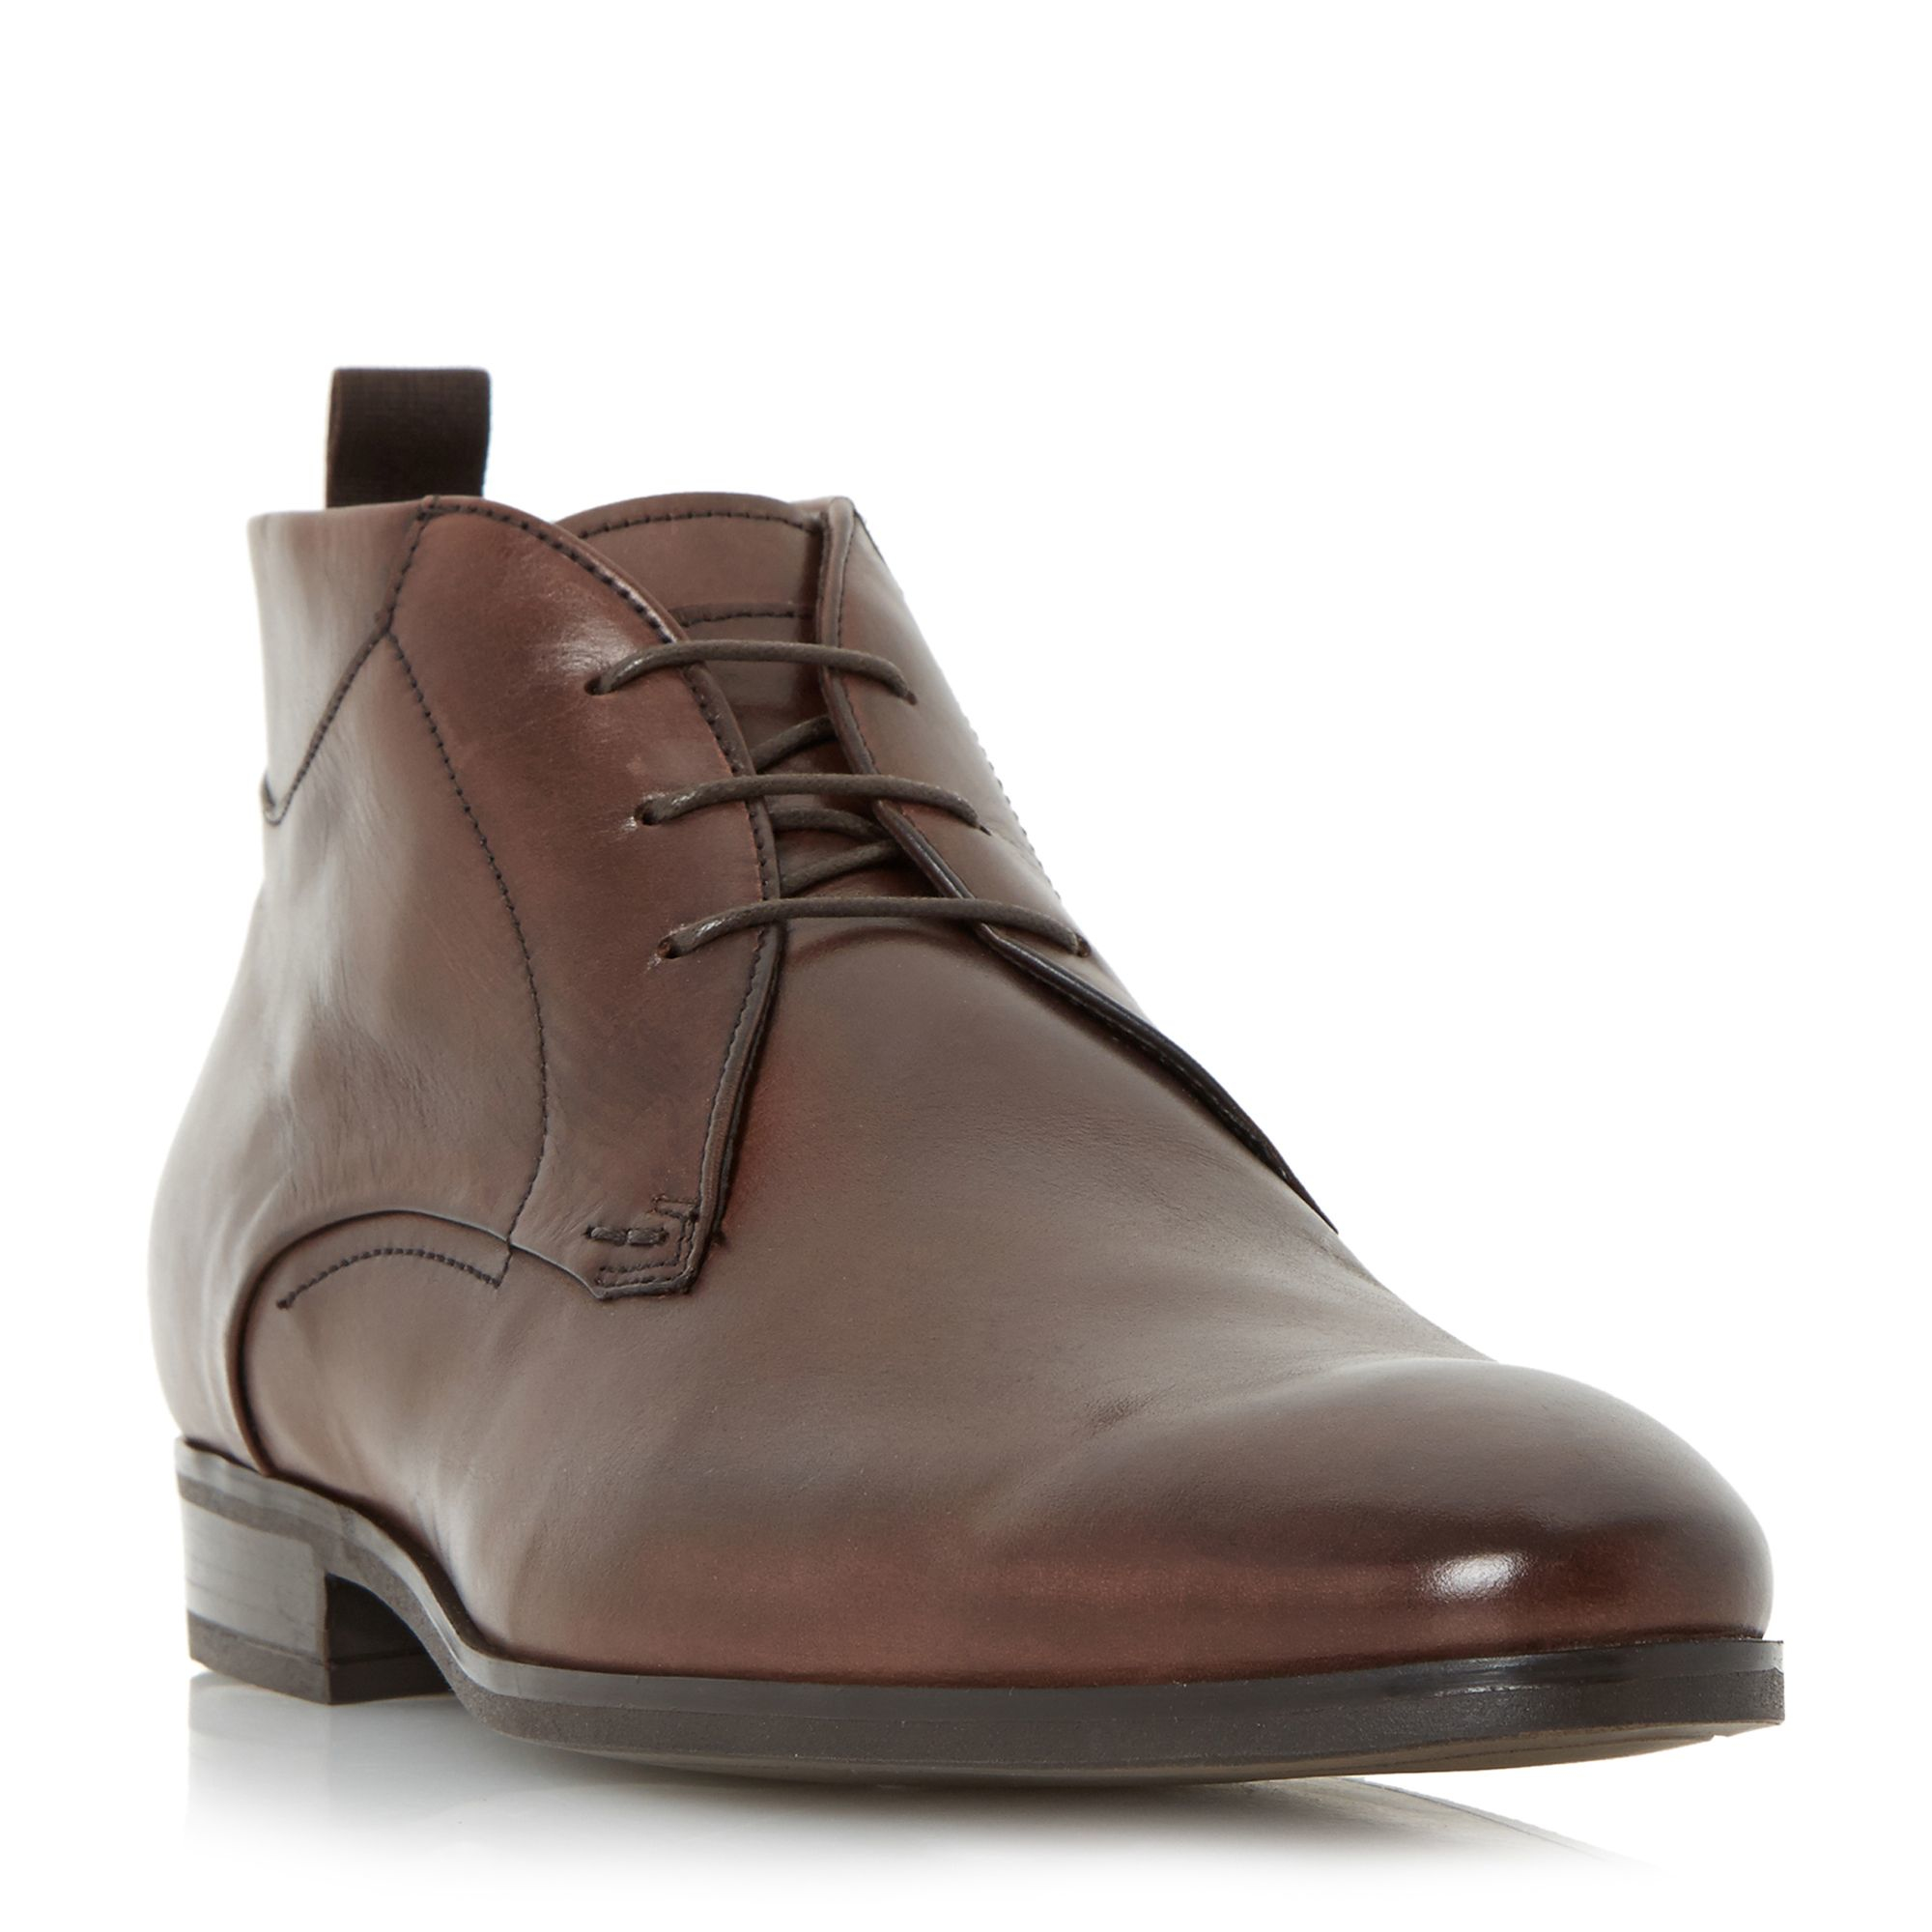 bertie mack leather chukka boots in brown for lyst